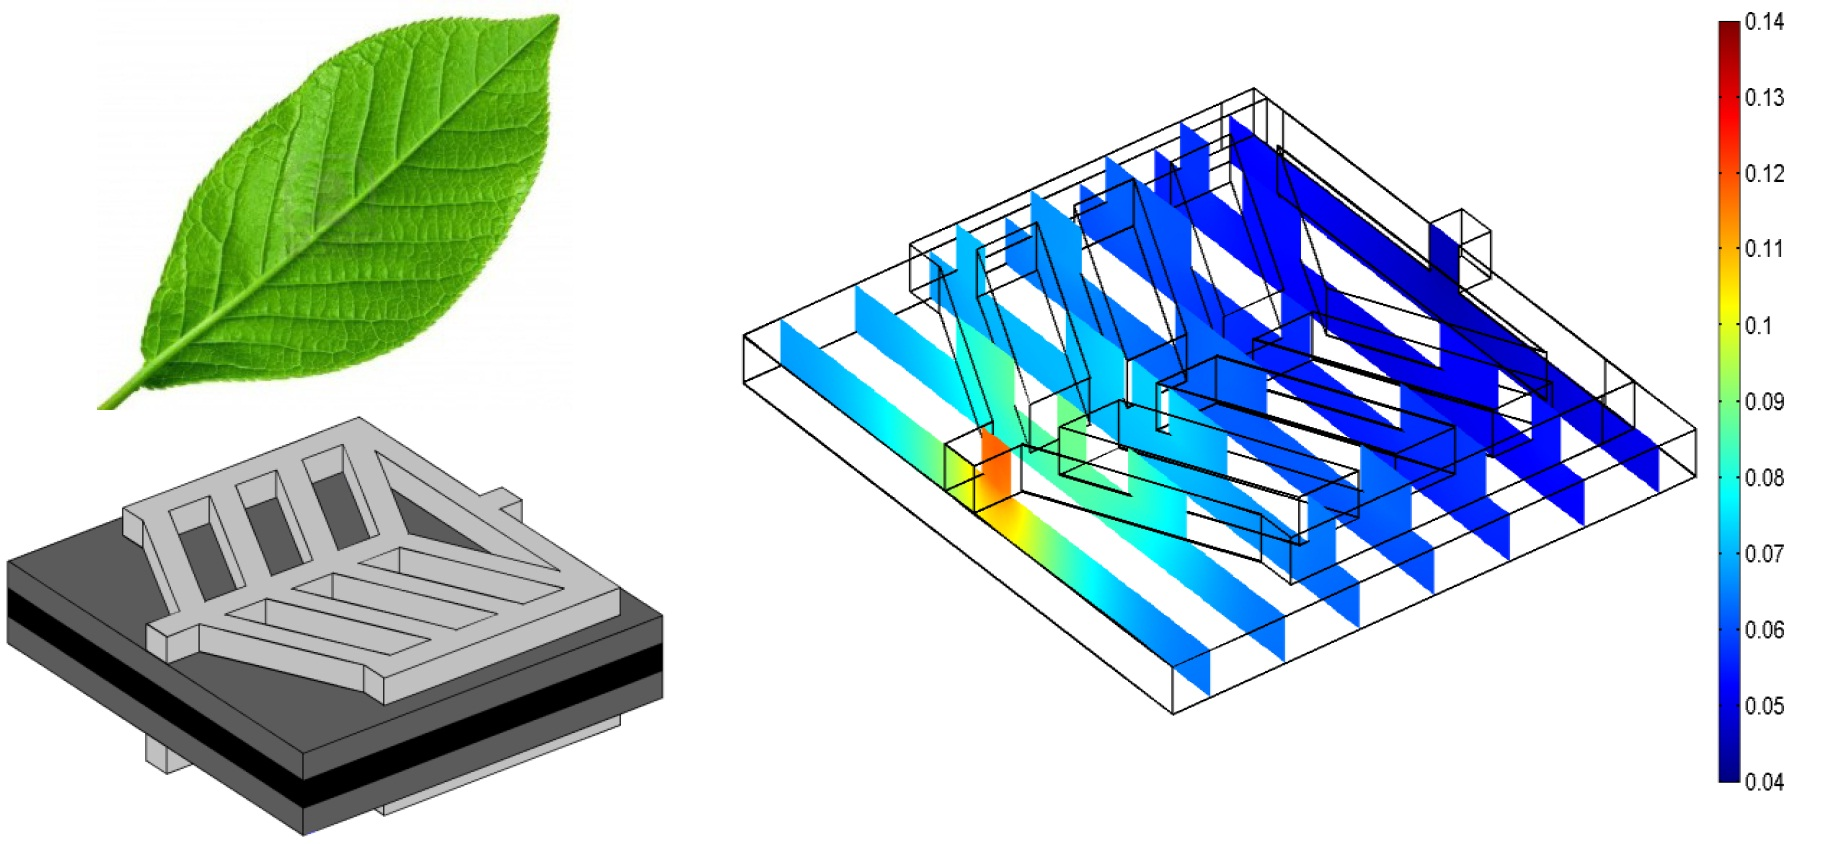 Figure 5. Three-dimensional computational domain and oxygen weight fraction distribution in micro PEM fuel cell with nature inspired gas flow channels. The design inspired from the existed biological fluid flow patterns in the leaf [12].